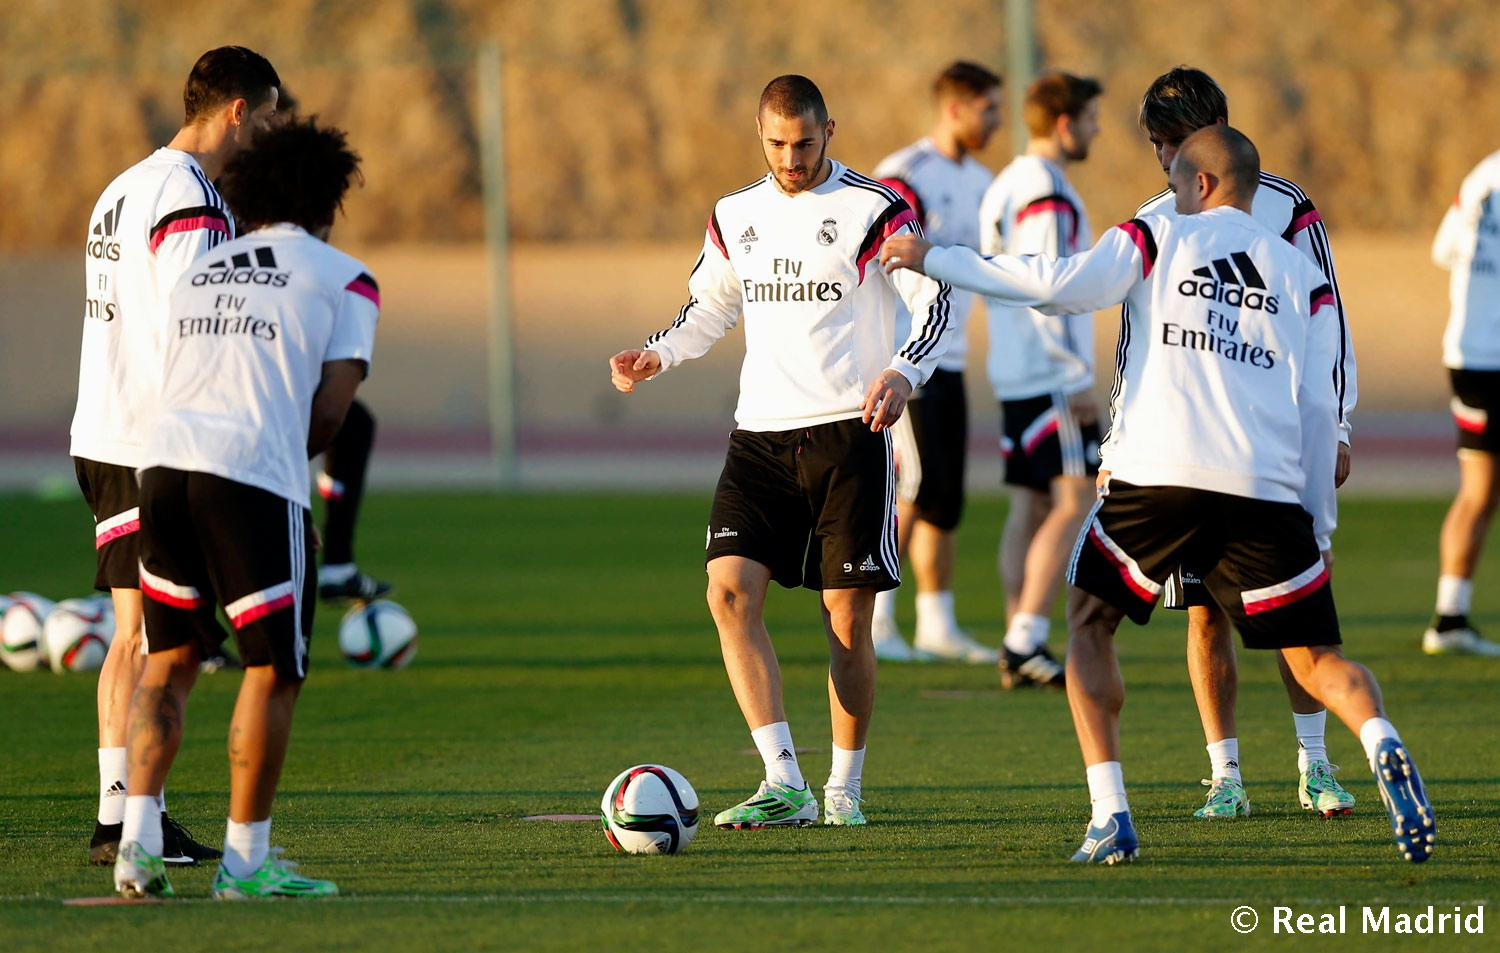 Real Madrid - Entrenamiento del Real Madrid - 19-12-2014